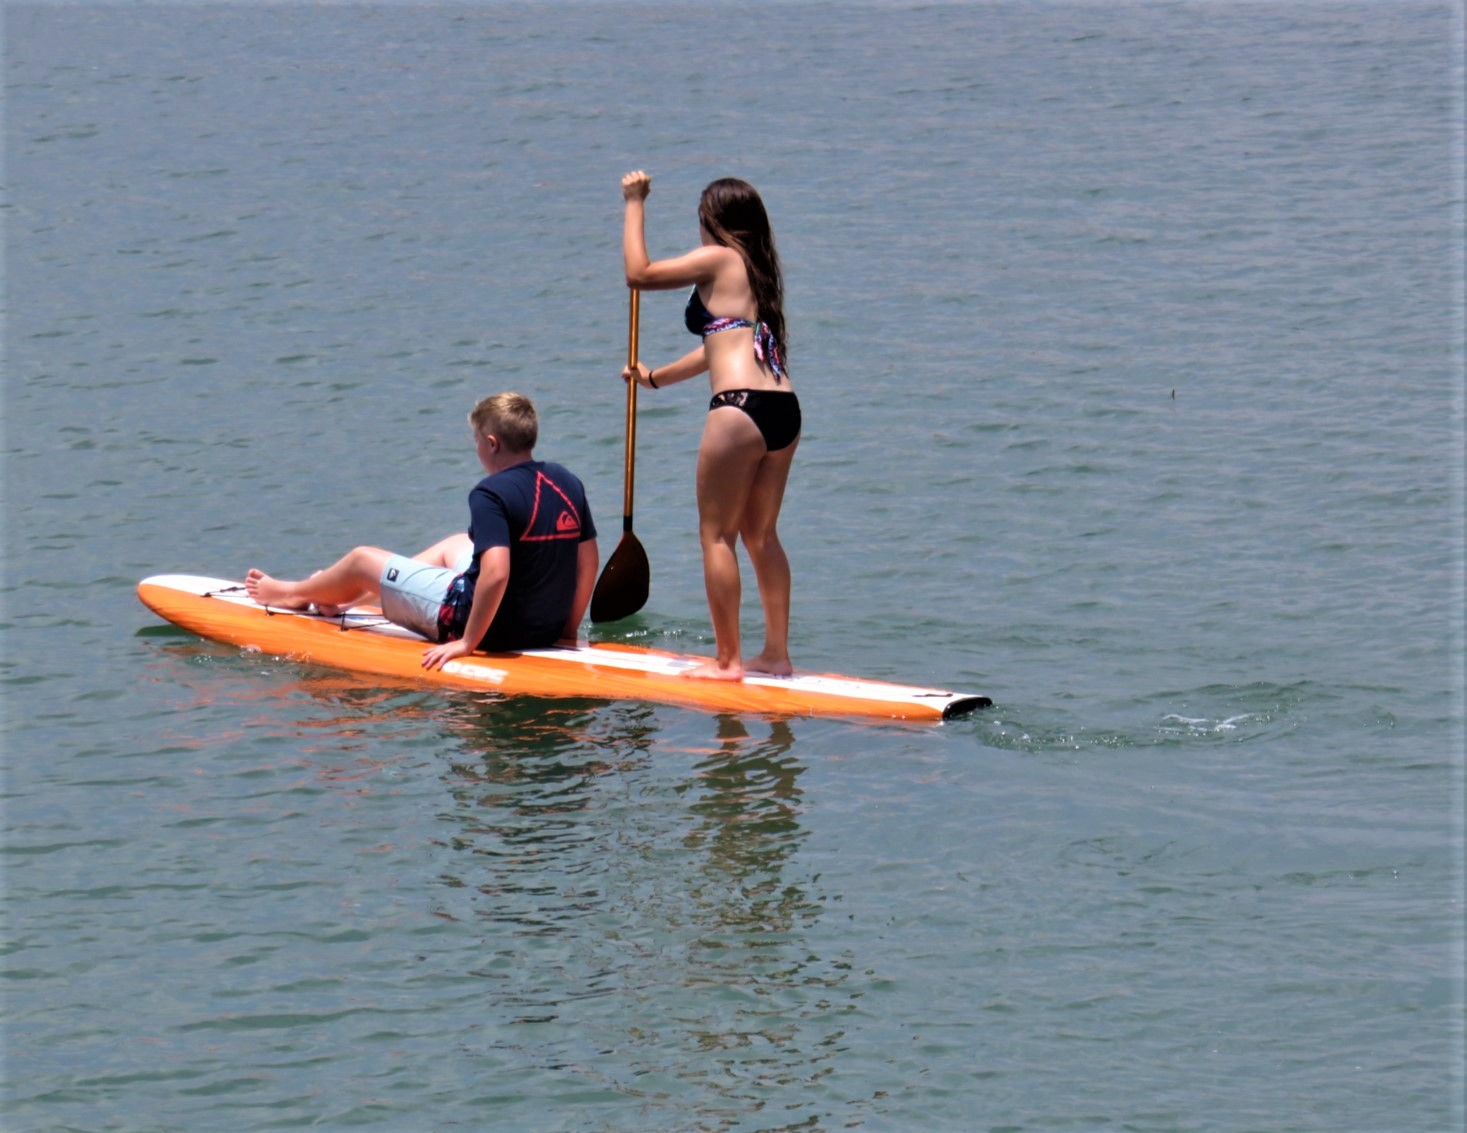 8.Newport beach paddle boarding